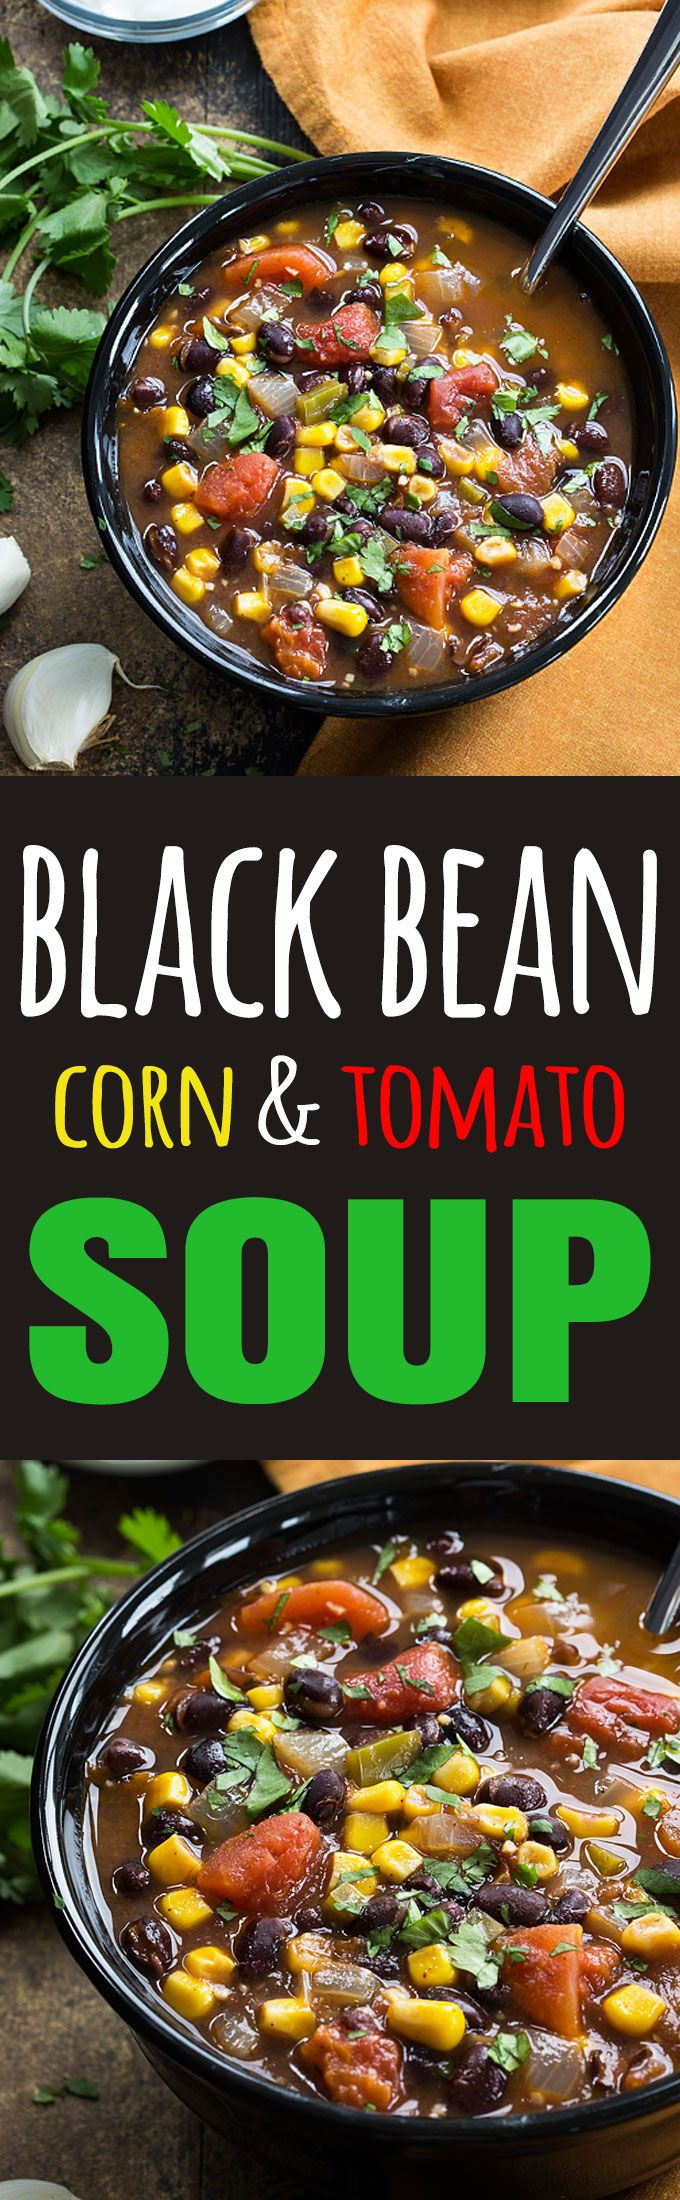 Black Bean, Corn and Tomato Soup - You'll never miss the meat in this hearty and satisfying vegetarian soup. On the table in just 30 minutes and the leftovers are even better the next day!